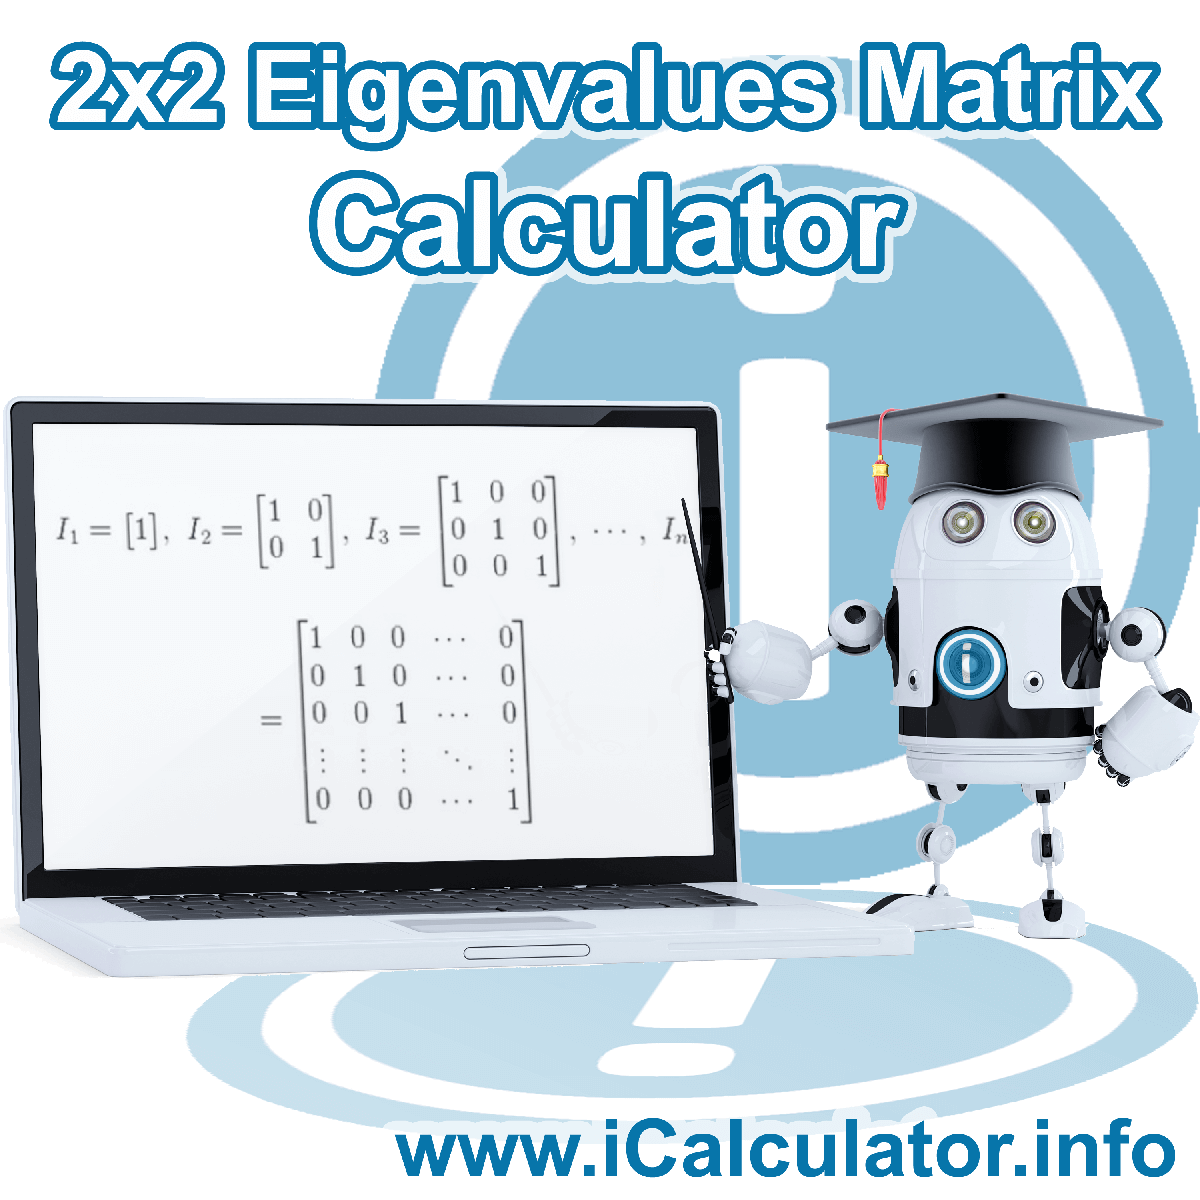 1x1 Eigenvalues and Eigenvectors Calculator. This image shows the properties and Eigenvalues and Eigenvectors Matrix formula for the 1x1 Eigenvalues and Eigenvectors Calculator